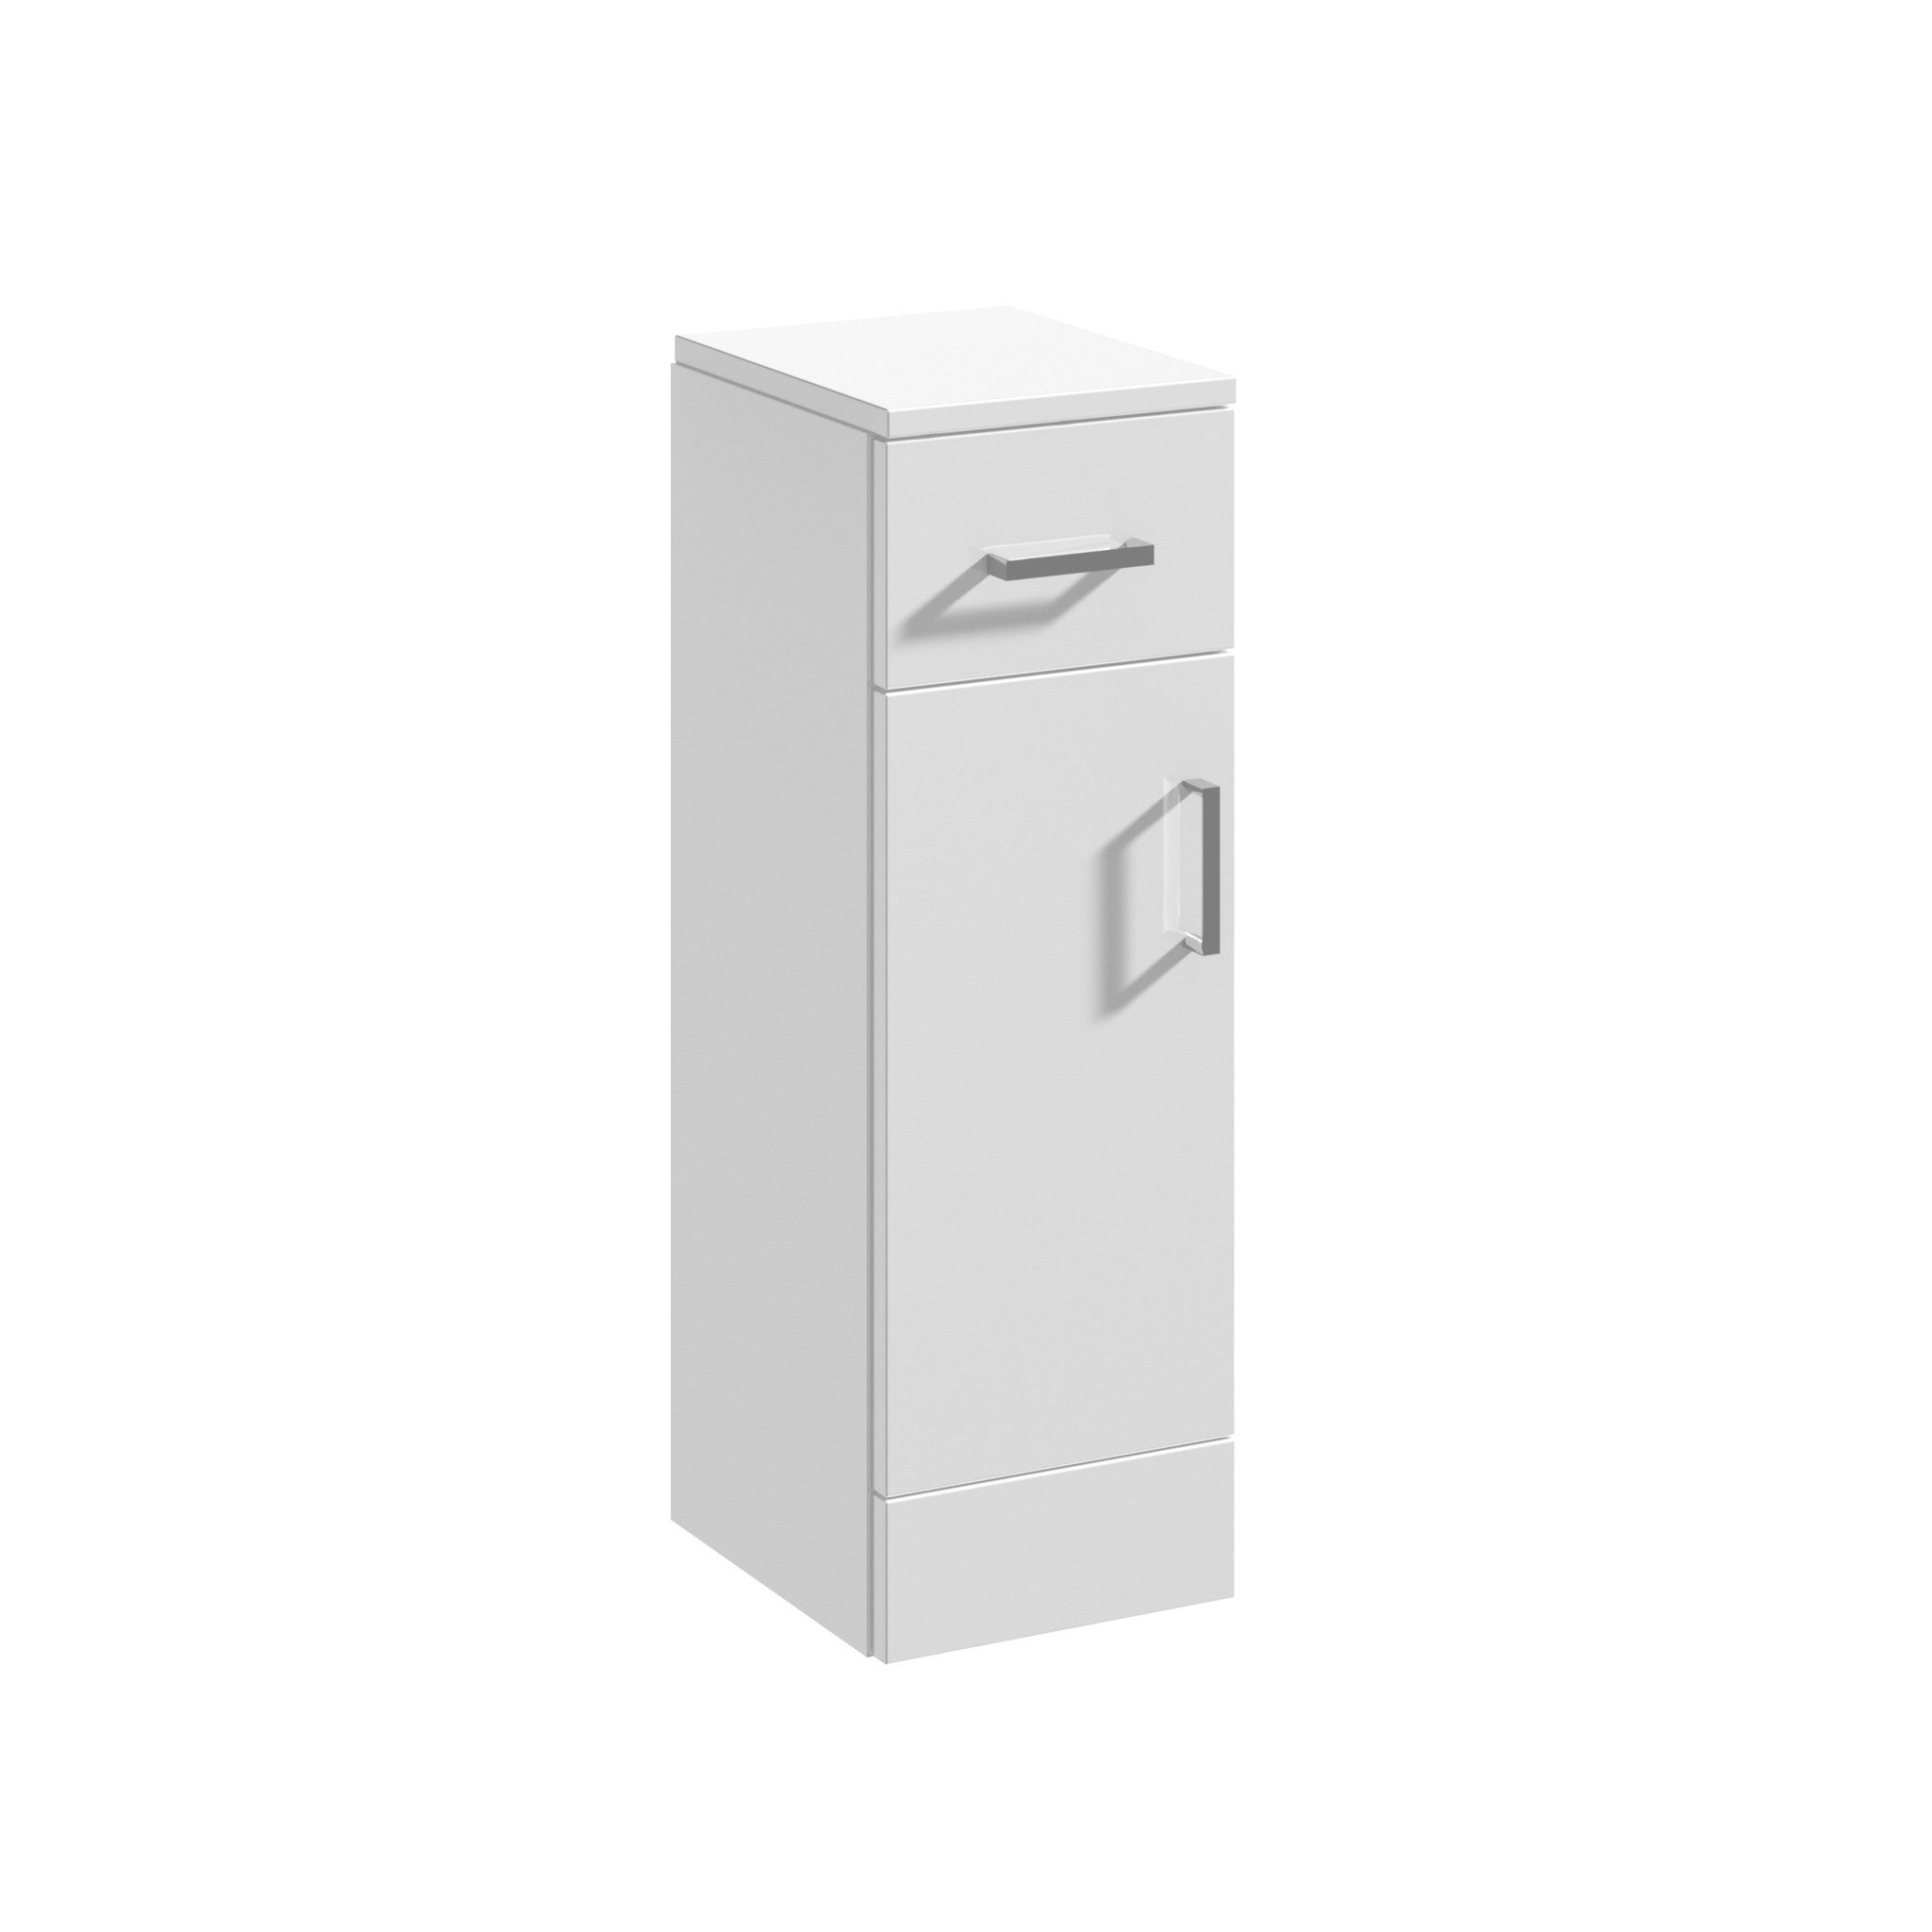 Bathroom cabinets the secret weapon to banish clutter for Bathroom cabinets 250mm